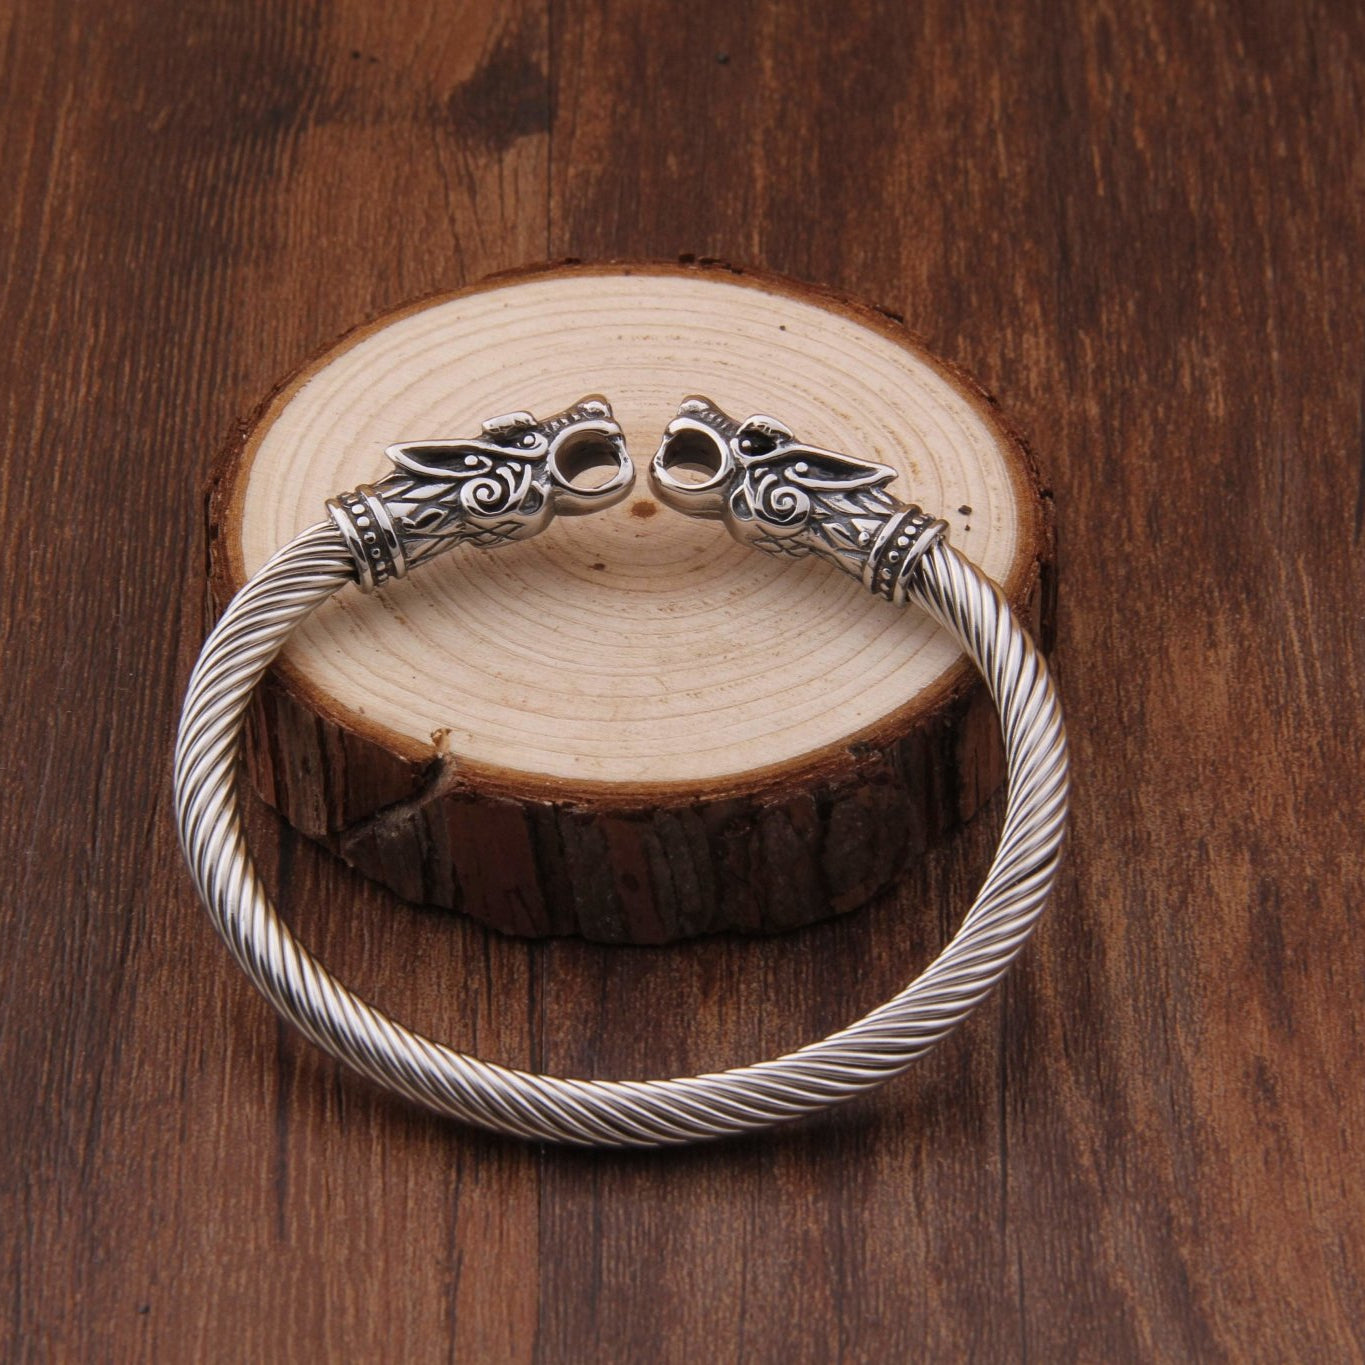 316L Stainless Steel Fenrir Adjustible Bracelet - VikingsBrand